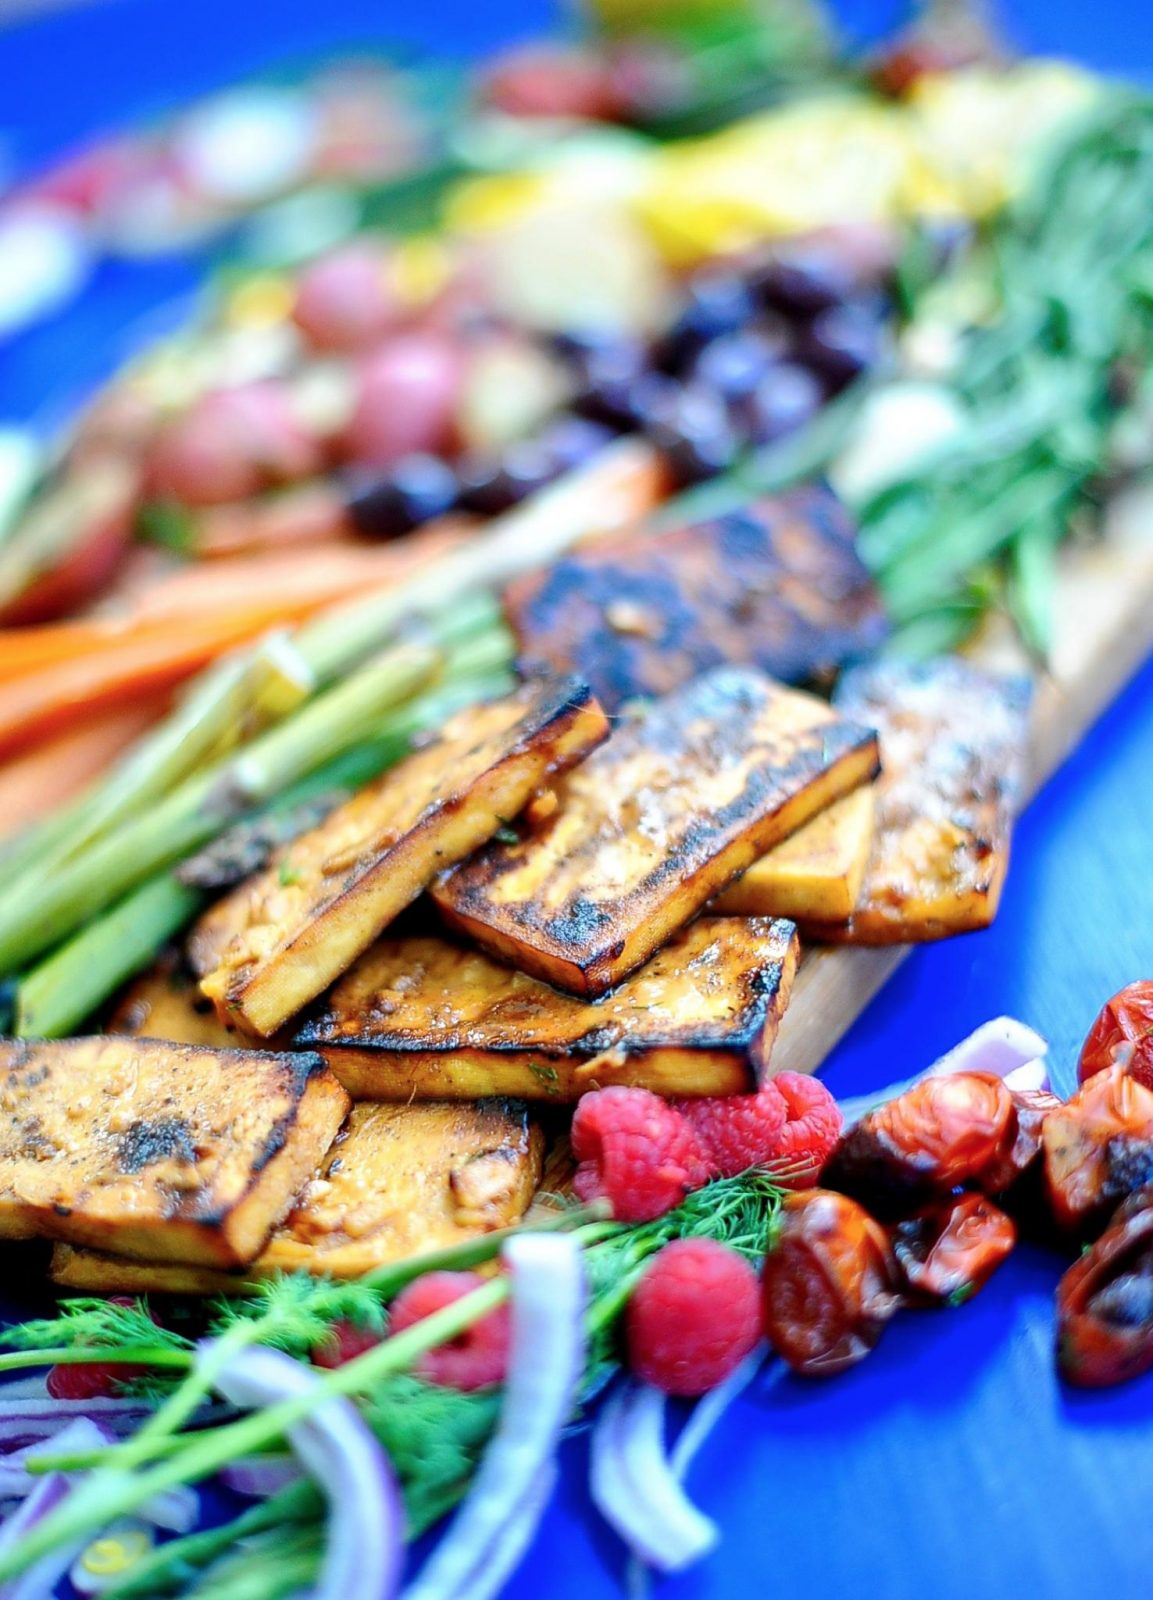 Vegan Nicoise Salad with Grilled Orange Tofu